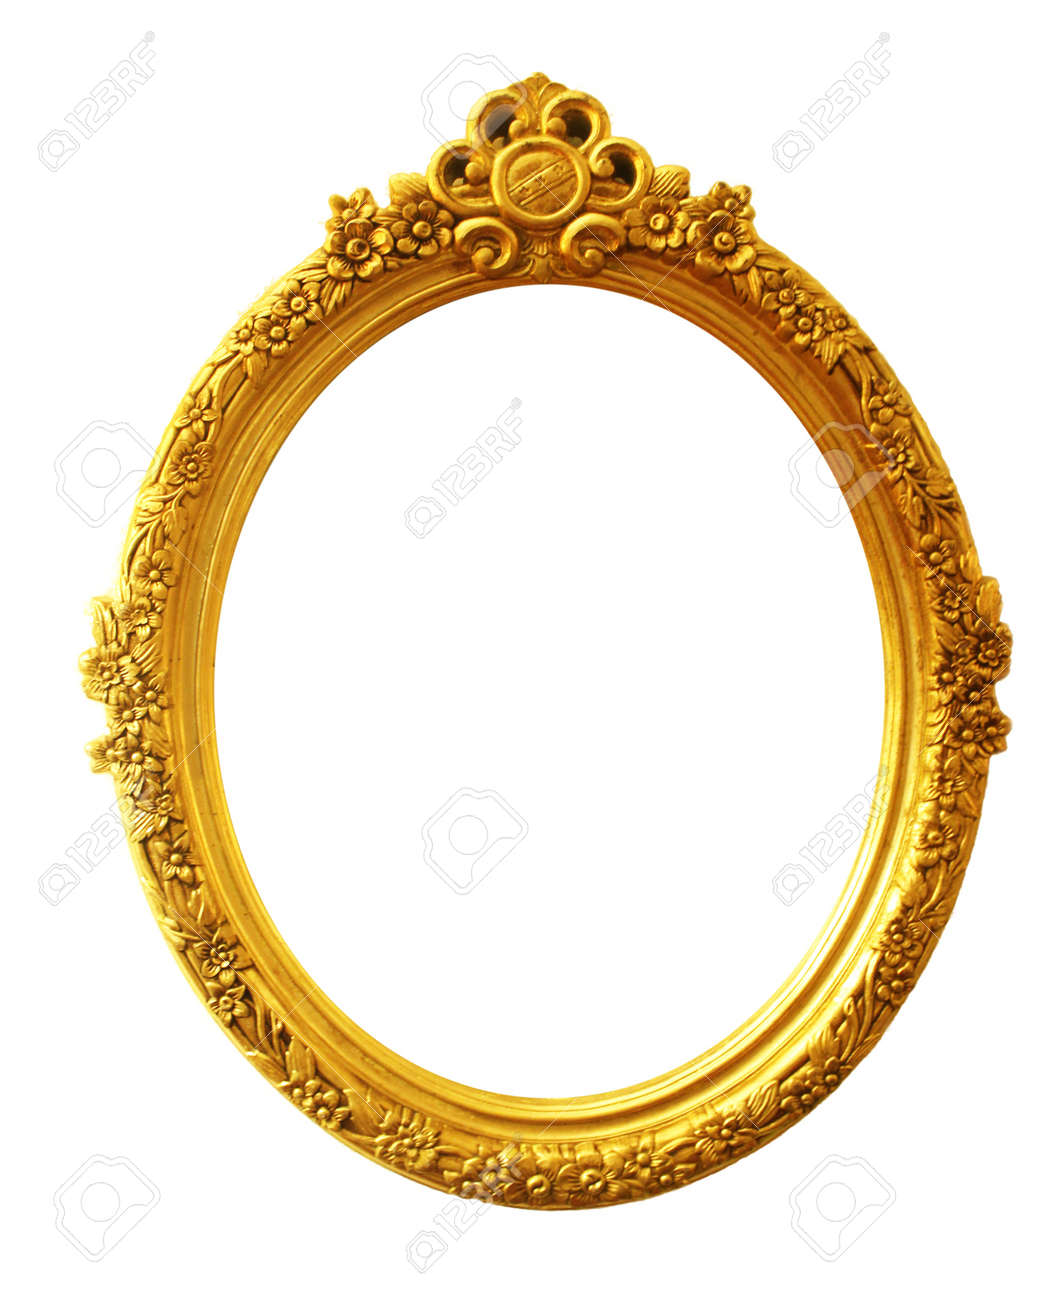 Old Antique Gold Frame Stock Photo, Picture And Royalty Free Image ...